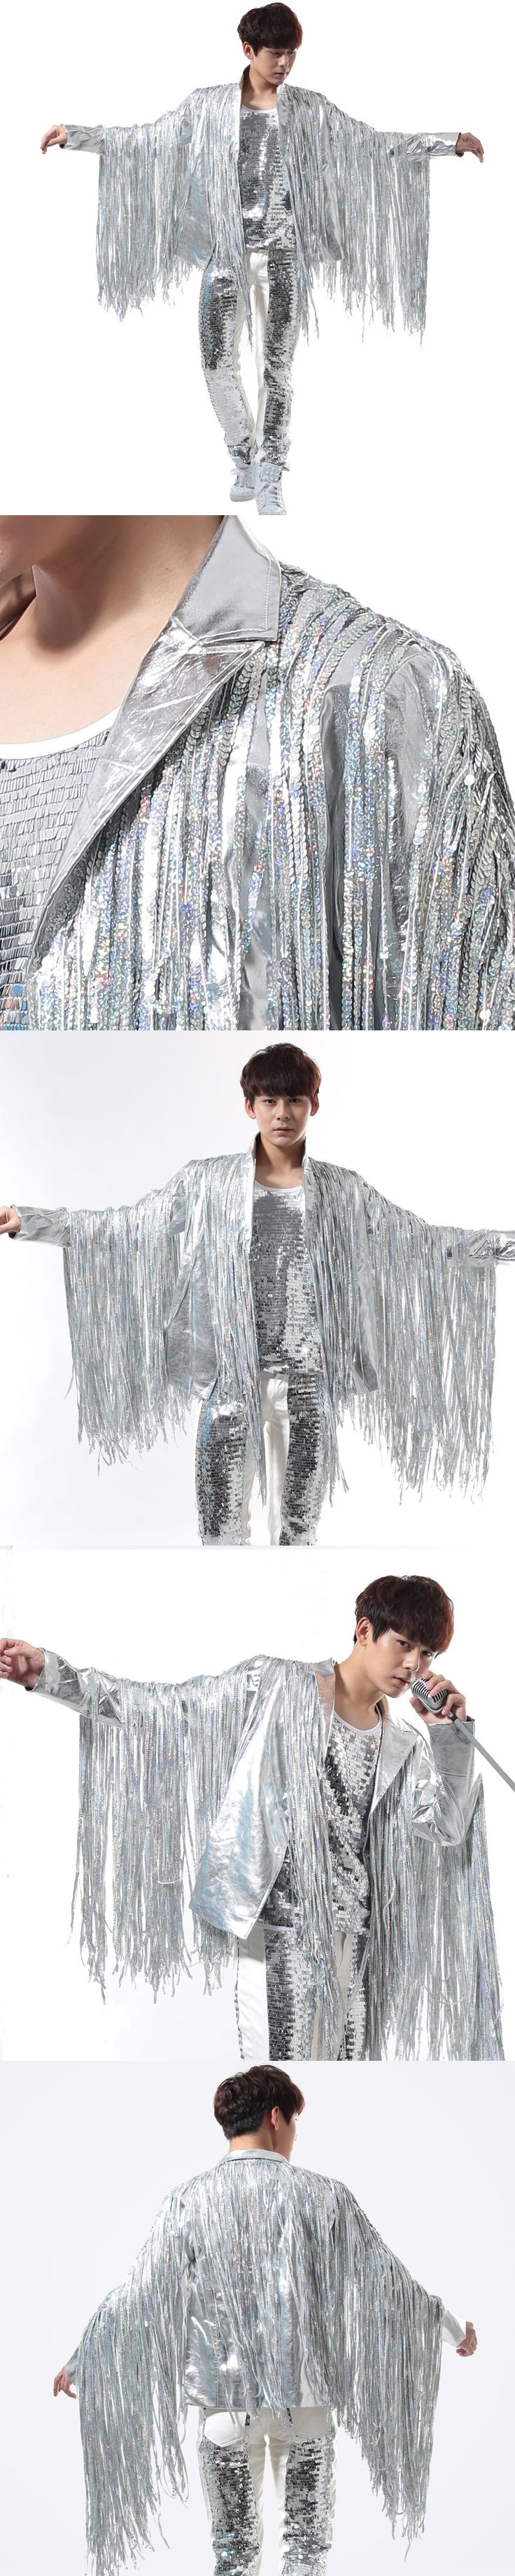 Customized 2016 new male personality nightclub singer pub rock punk fringed leather jacket silver stage costume Size S-6XL